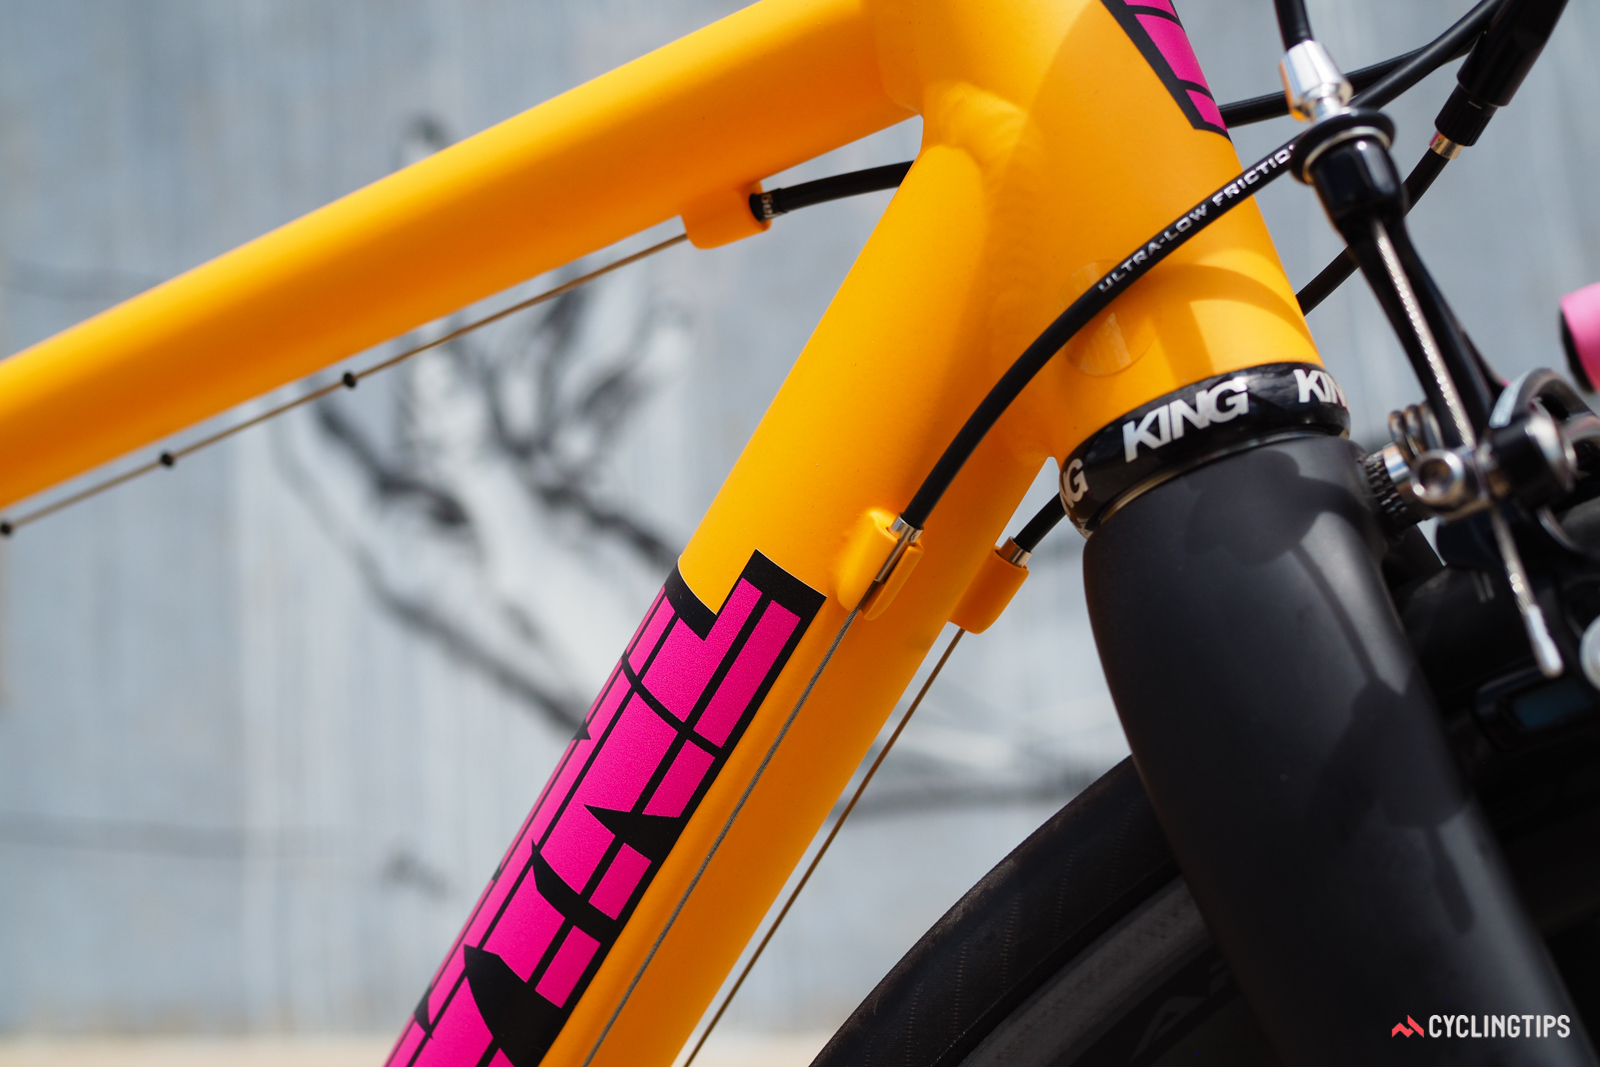 Cable routing is unabashedly external with split stops for ease of service. Buyers will want to apply clear decals to protect the paint from housing rub.